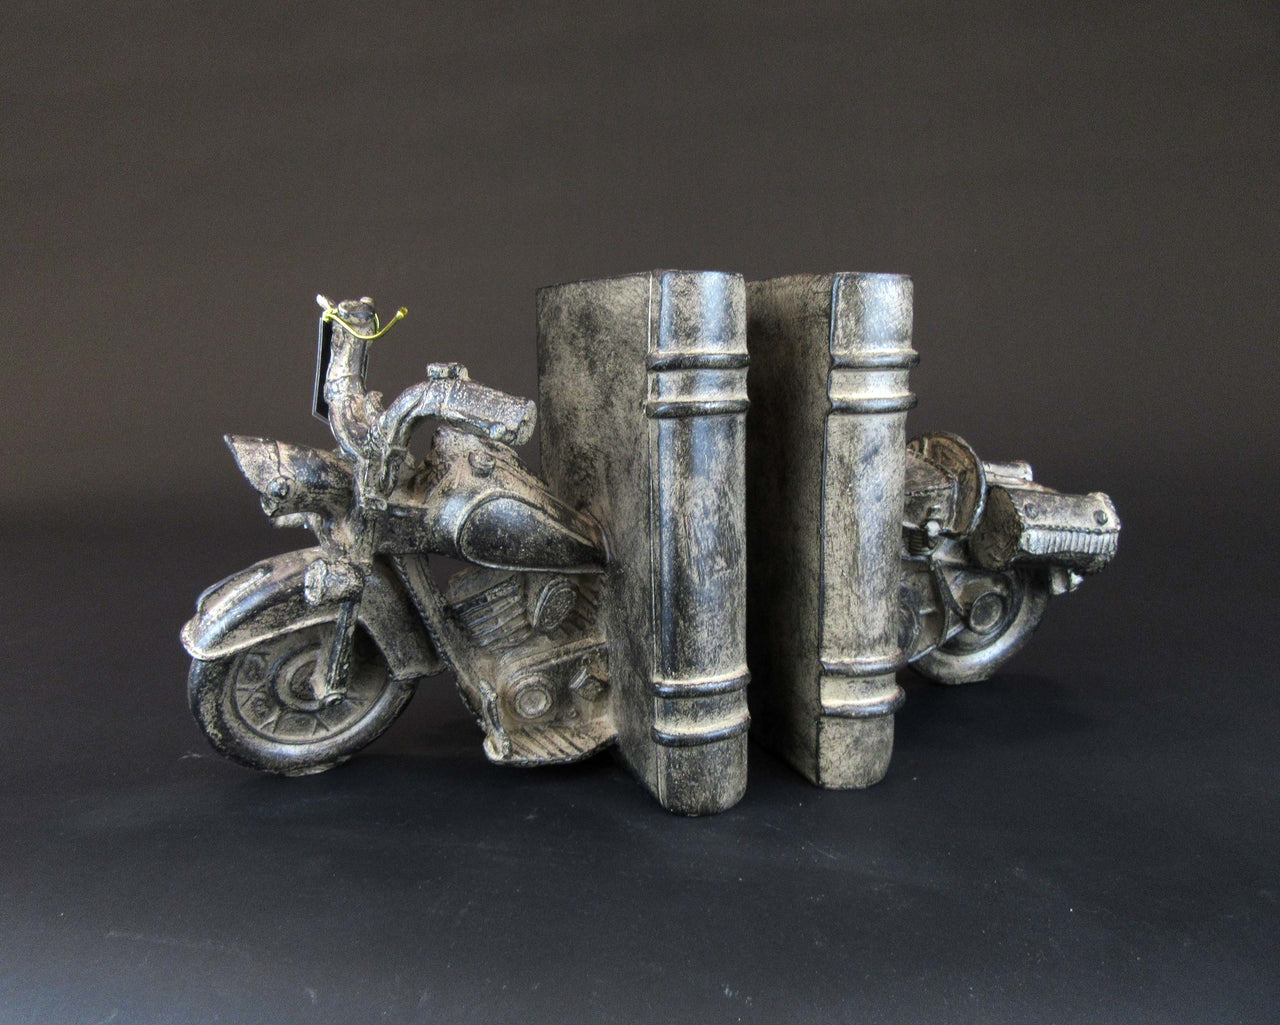 HCHD5226 - Motorcycle Bookends